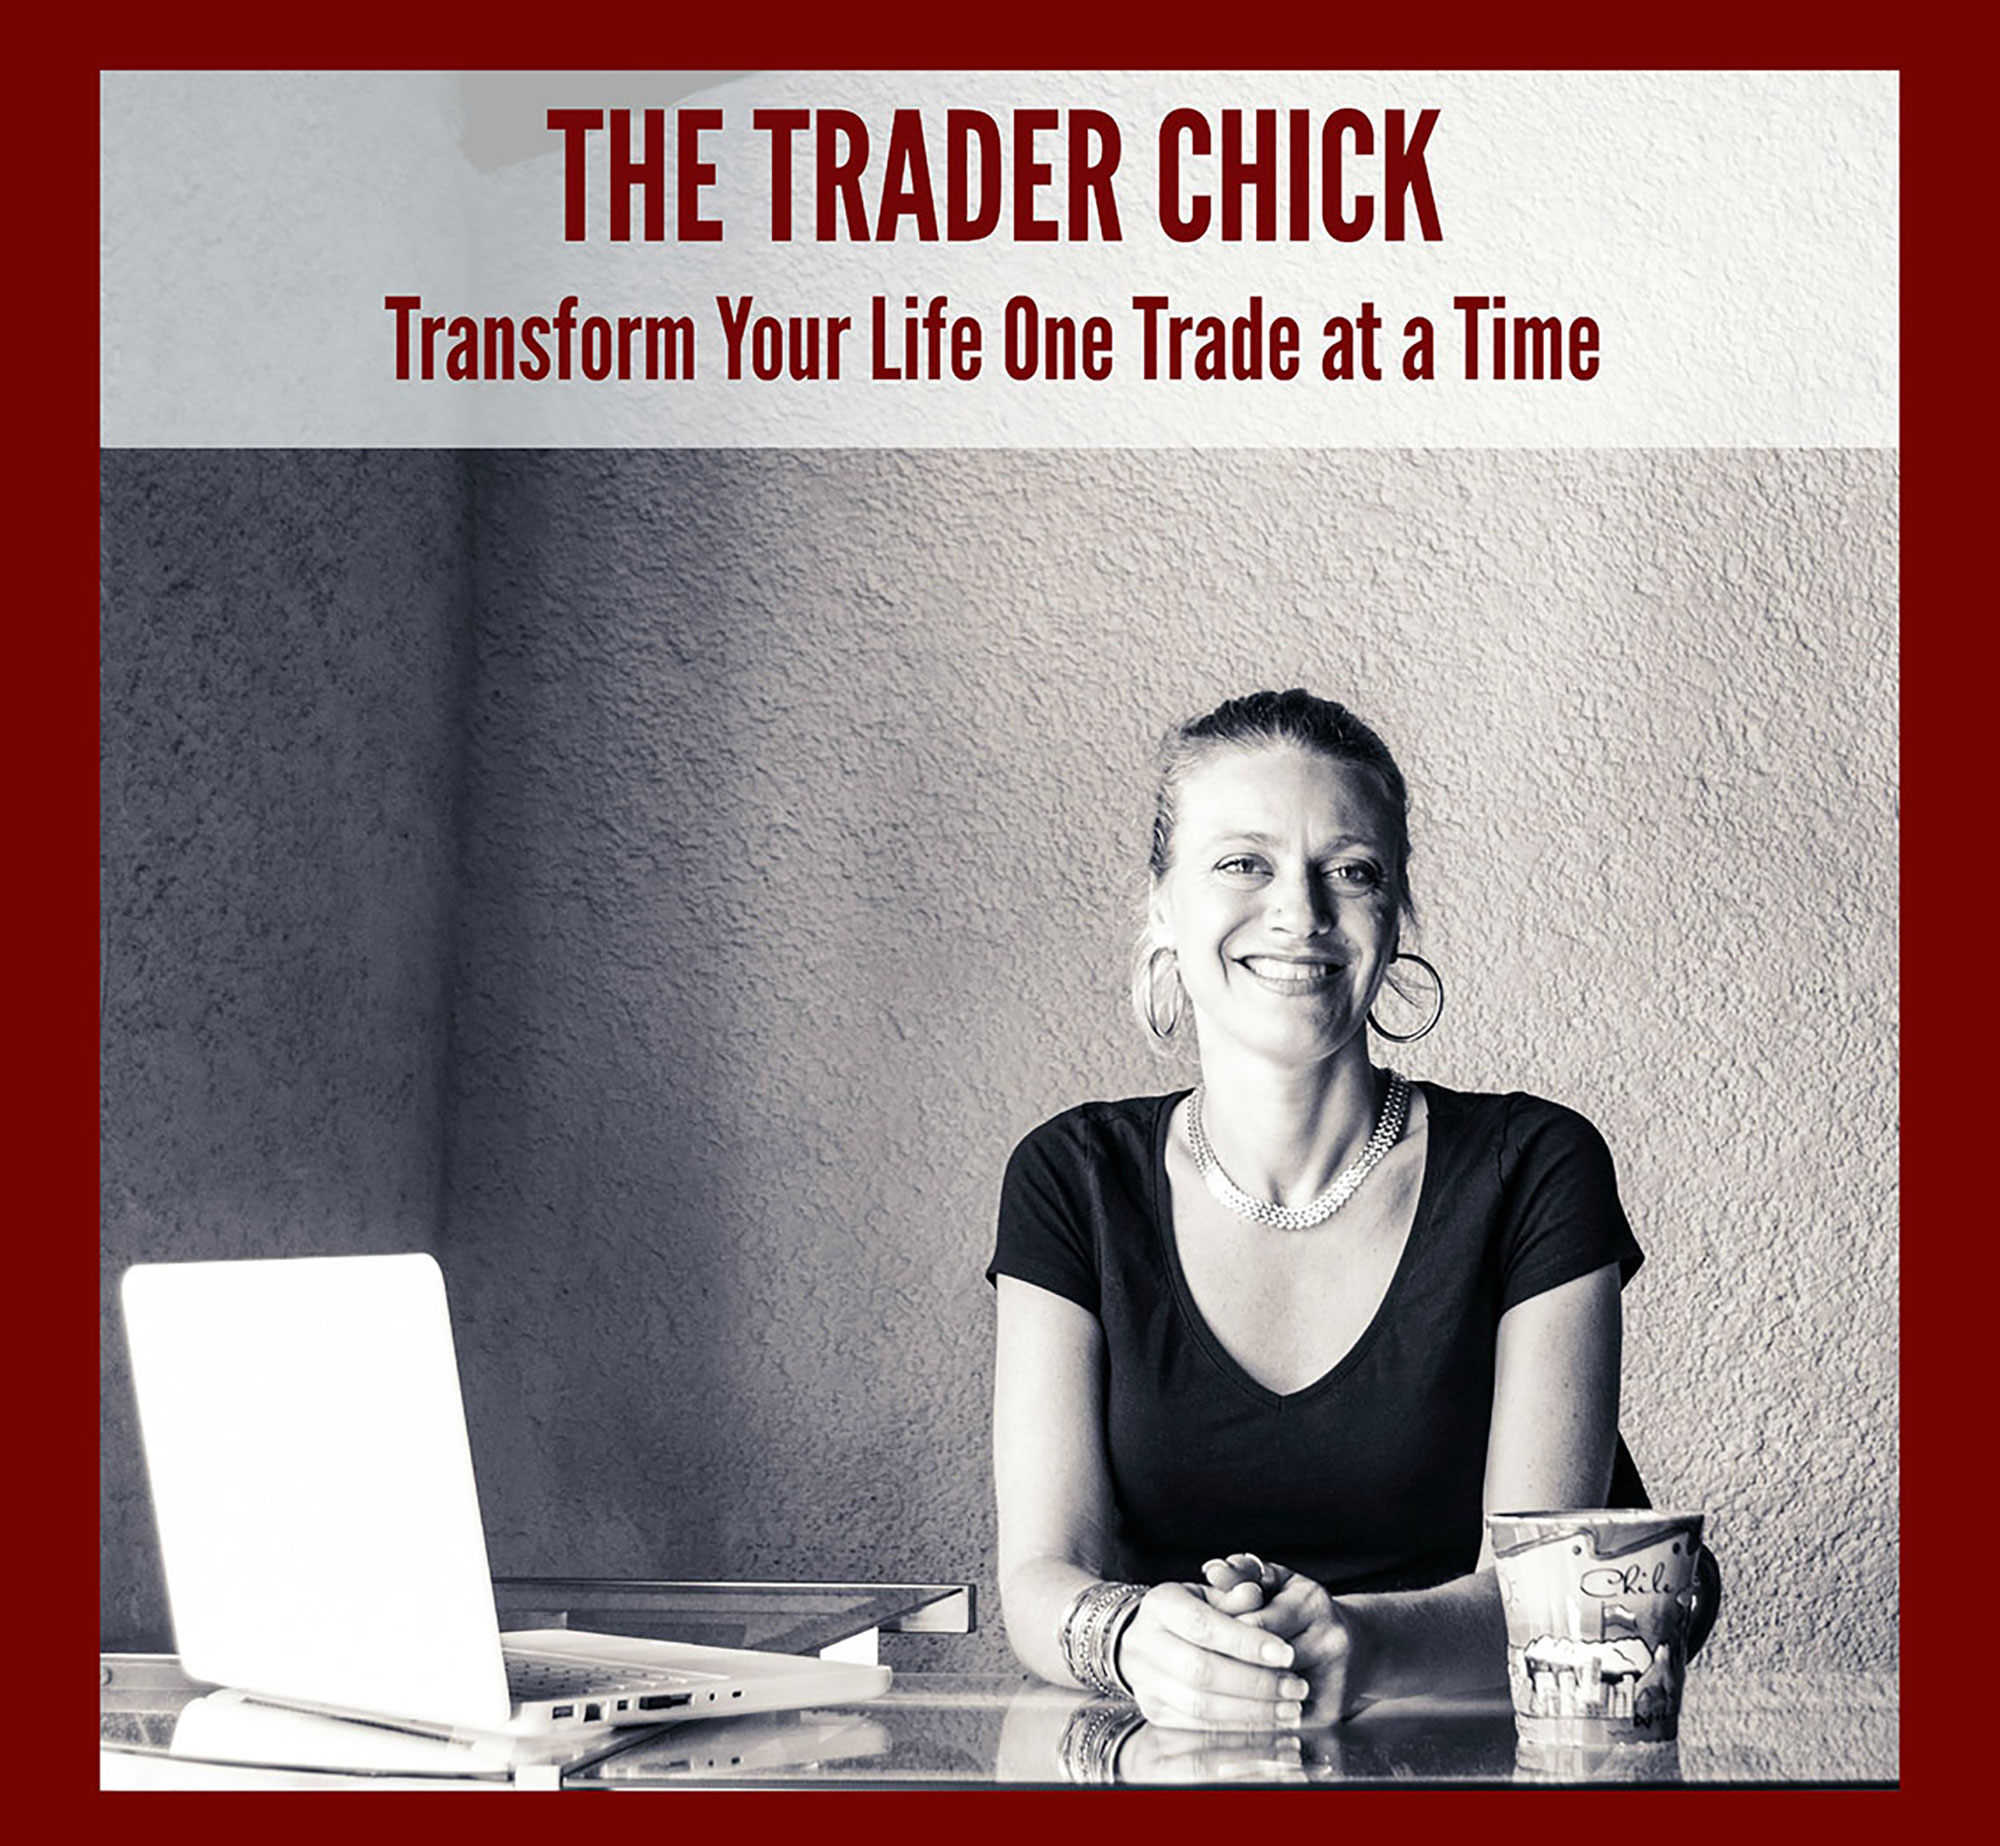 day trading for beginners, the trader chick